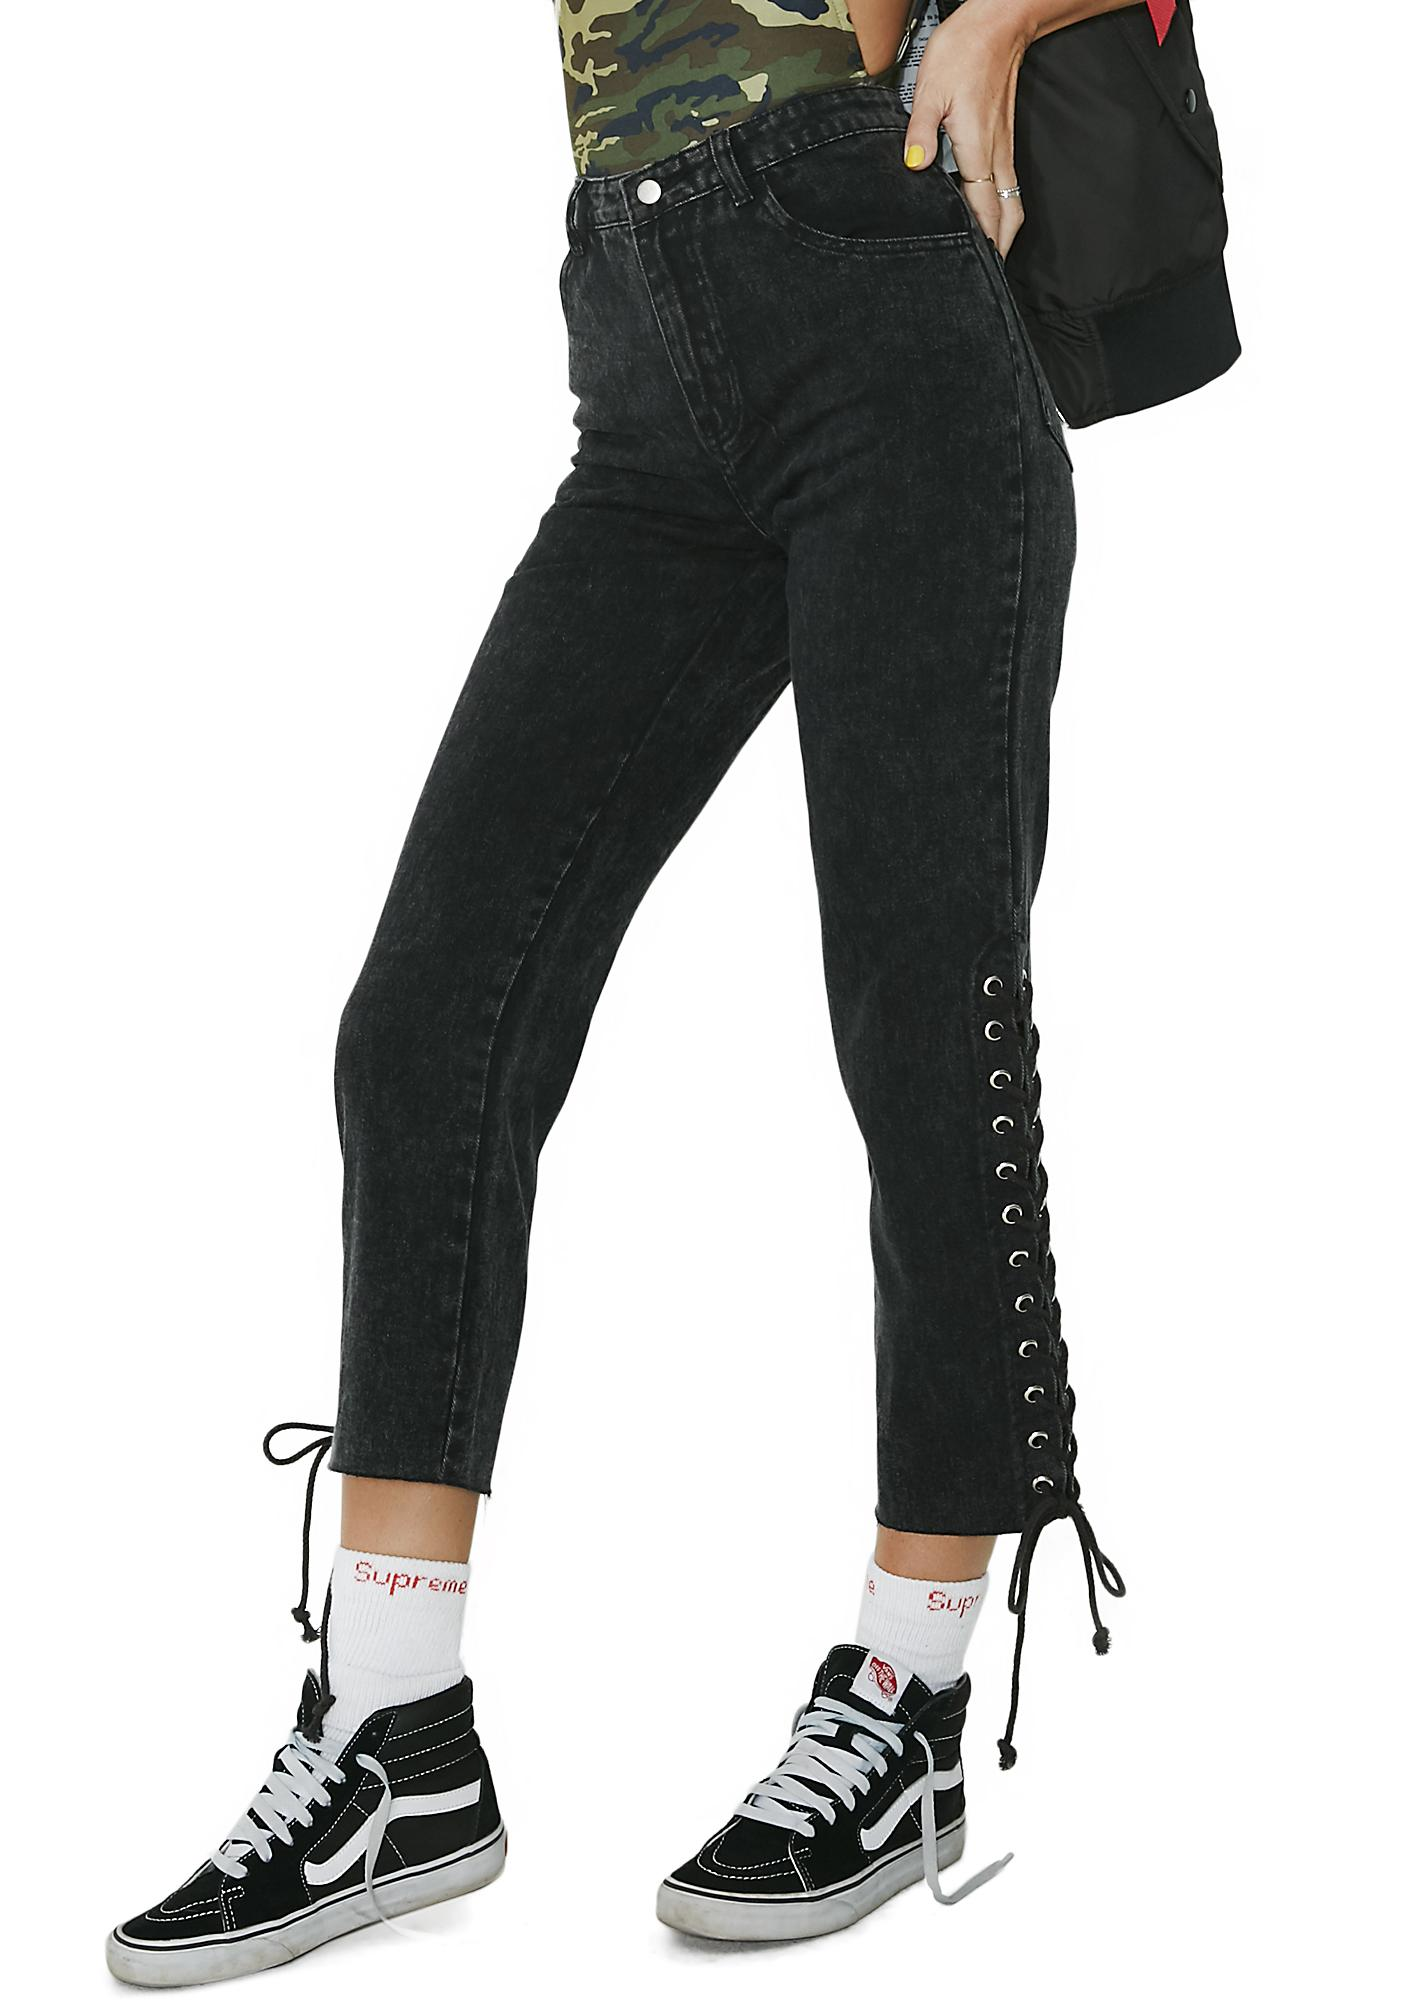 Peggy Lace-Up Jeans